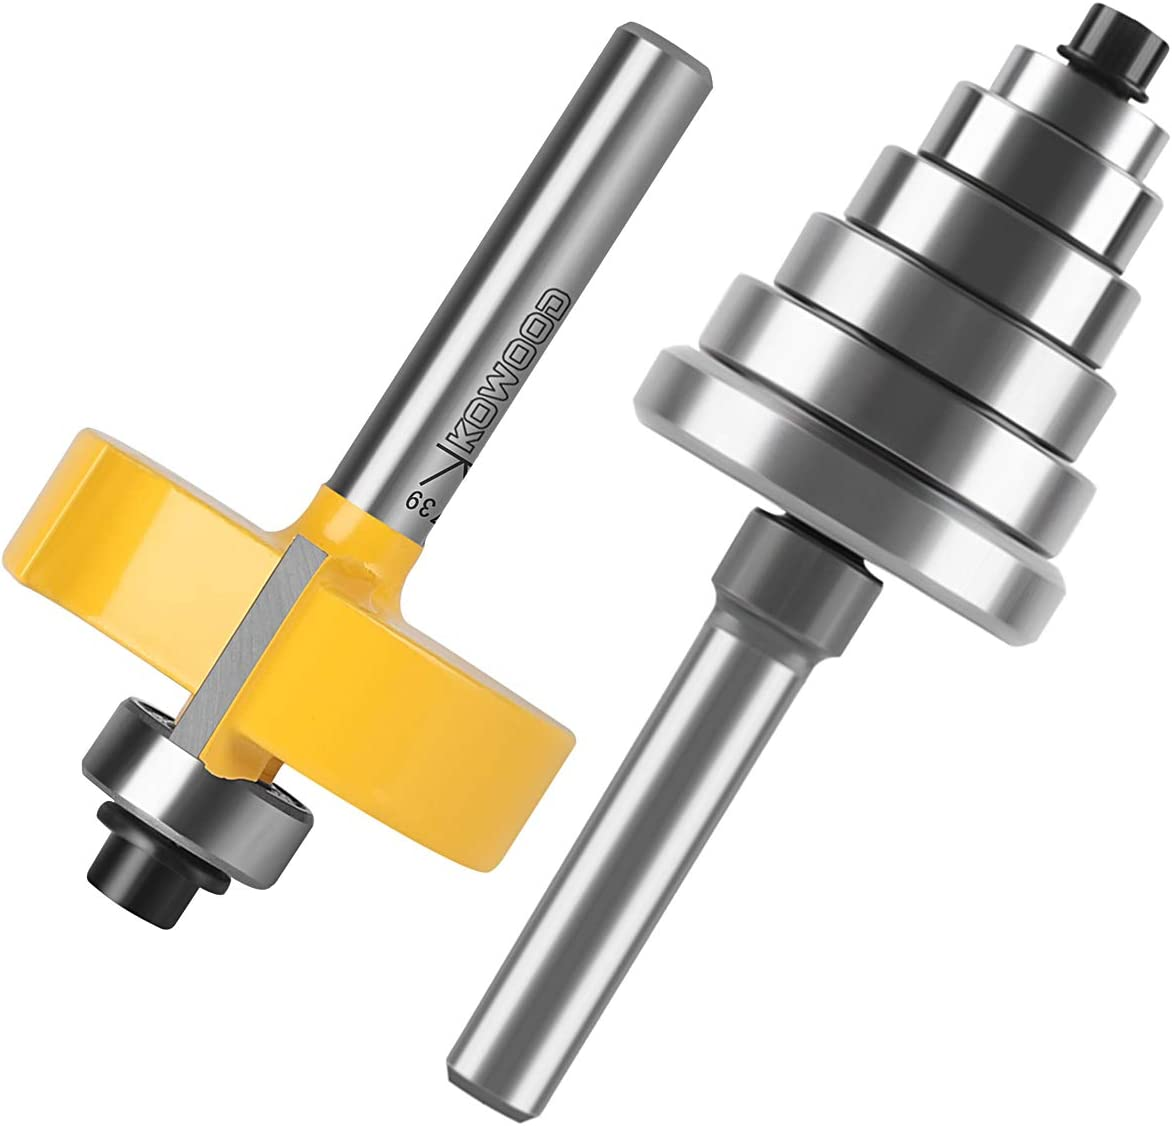 "KOWOOD 1//4/"" Inch Shank 1-3//8/"" Height Multi Rabbet Router Bit Set interchangeable and adjustable bearing. 6 bearings Multiple Depths 1//8, 1//4, 5//16, 3//8, 7//16, 1//2"